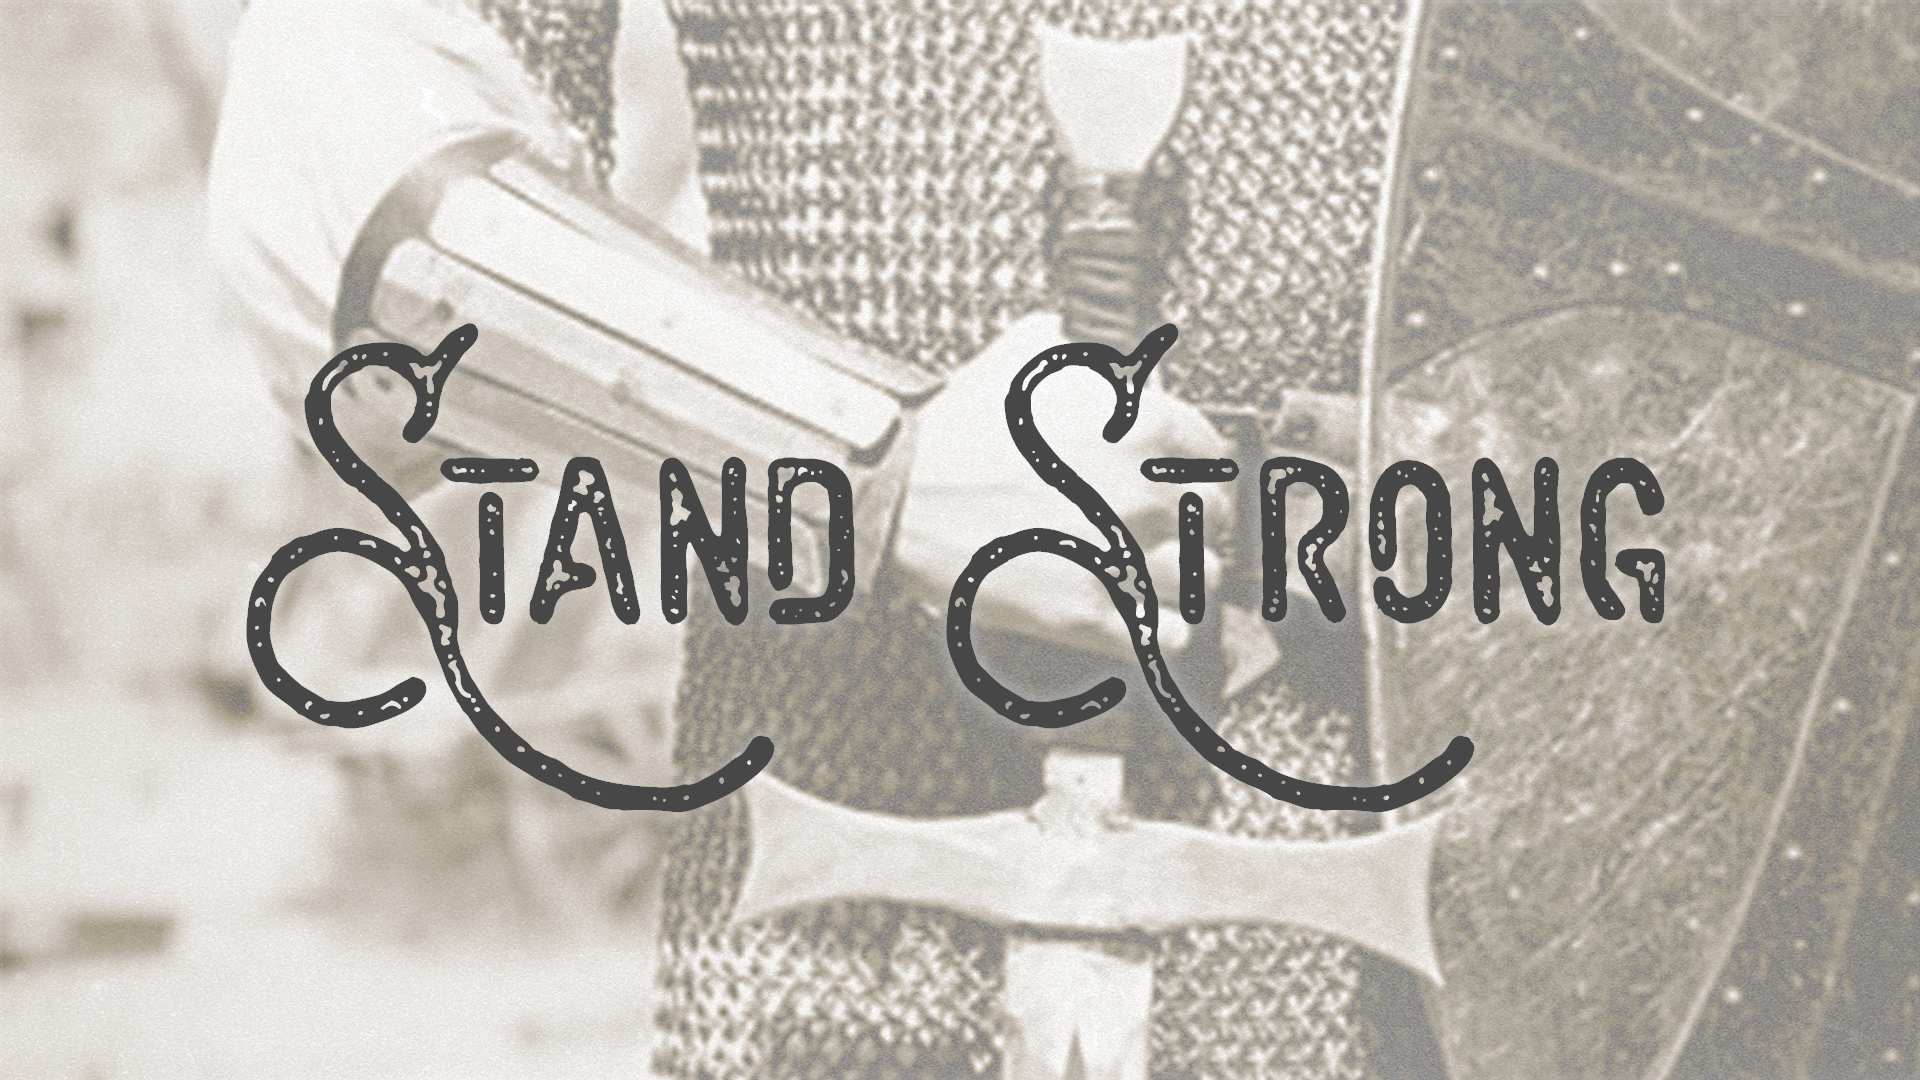 Stand Strong - Sword of the Spirit